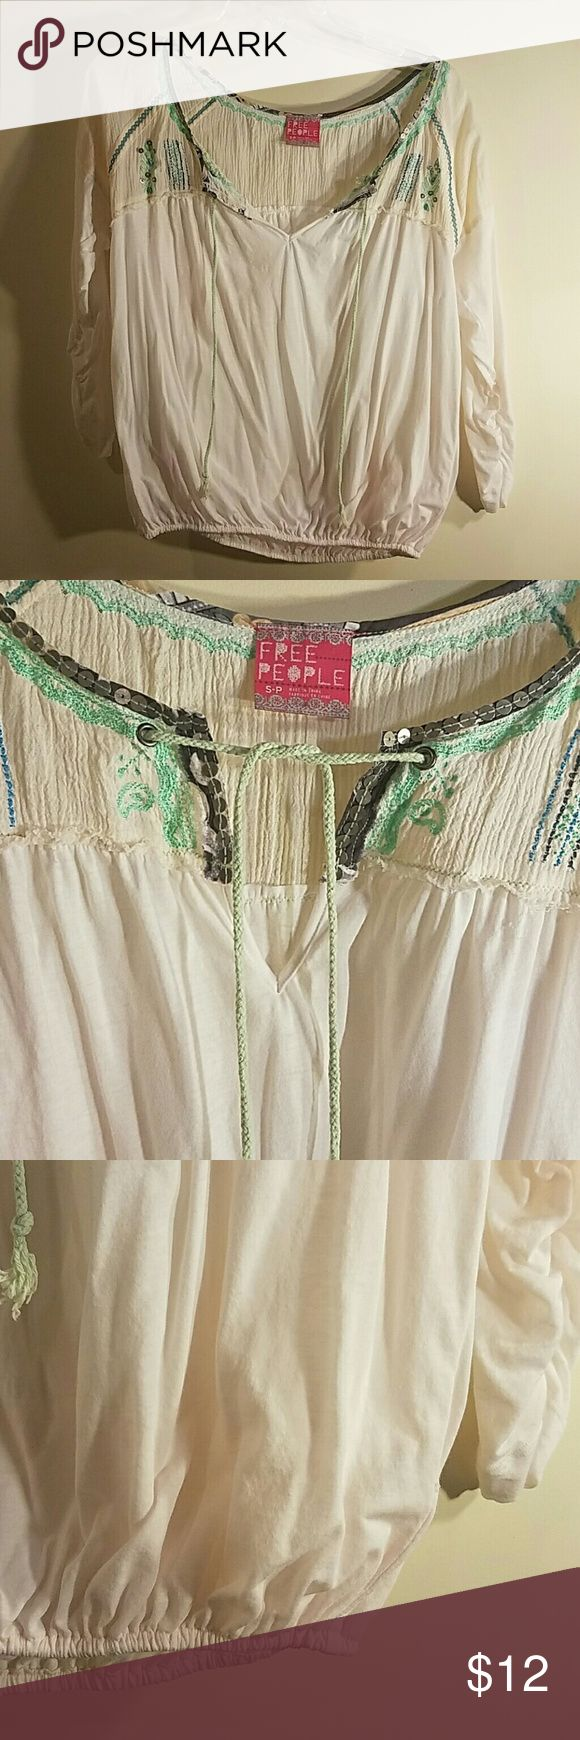 Free People Boho Top Good condition.  Perfect spring top.   Size S-P.  Has seemingly pink undertones.  But I do not believe from laundering.  ?? Free People Tops Blouses